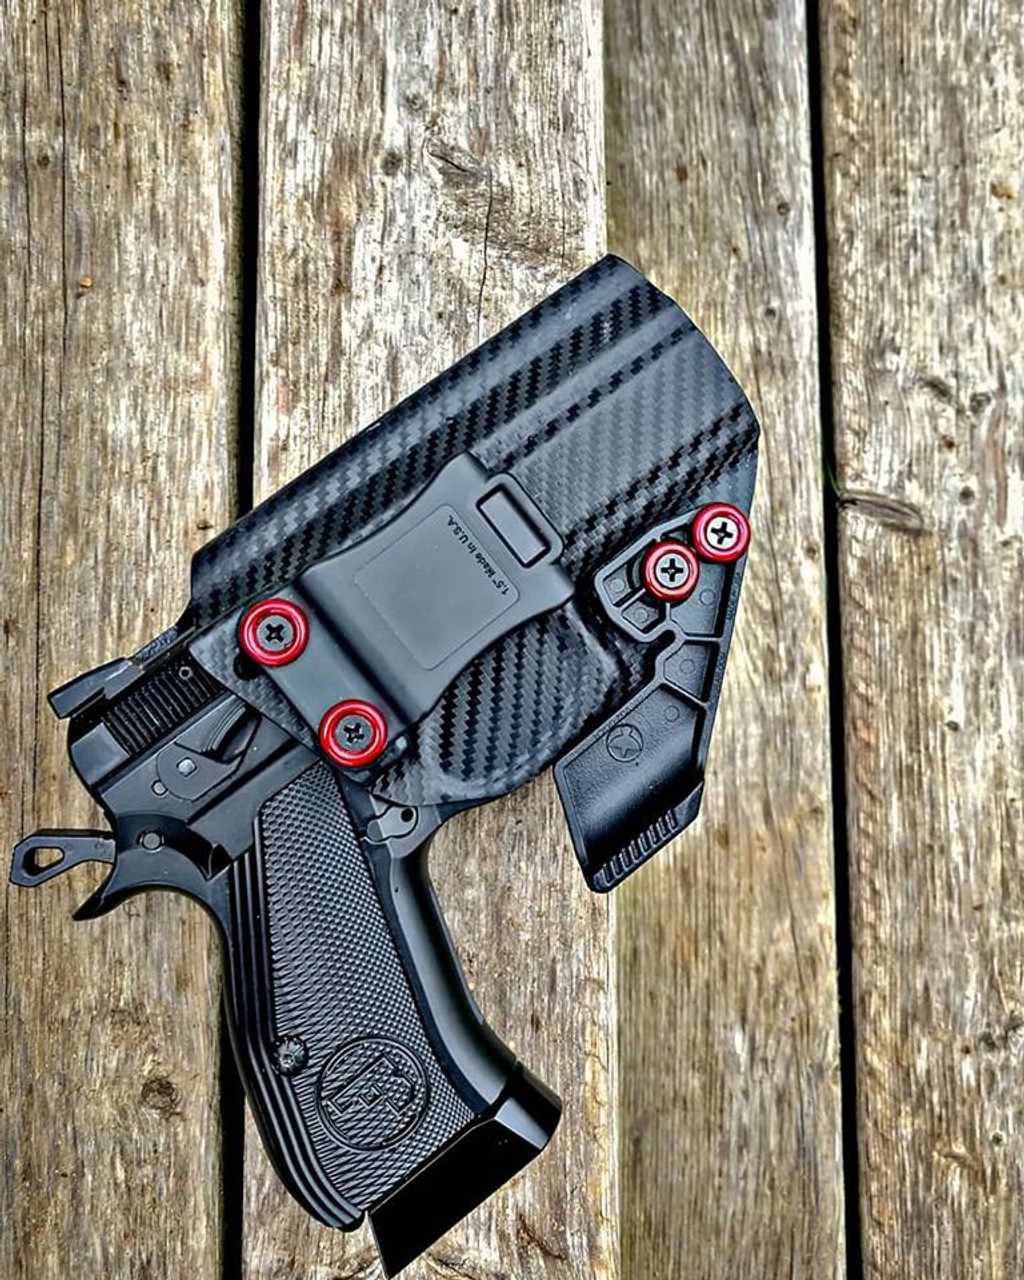 CZ P-01 Omega Appendix Carry Kydex Holster